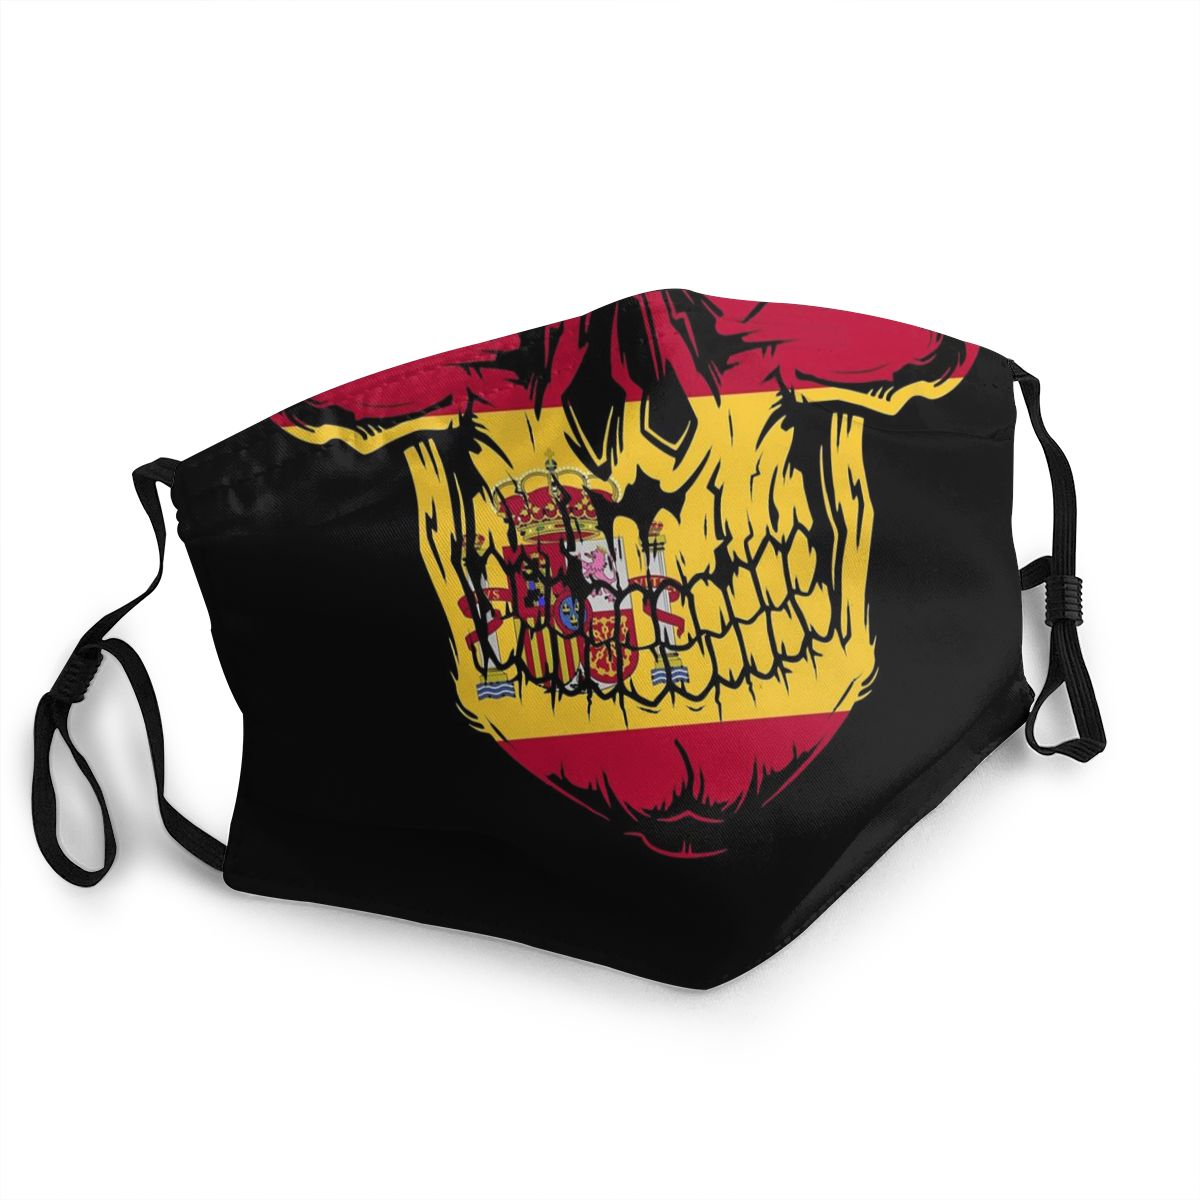 Spanish Spain Flag Skull Adult Non-Disposable Mouth Face Mask Anti Haze Dustproof Protection Cover Respirator